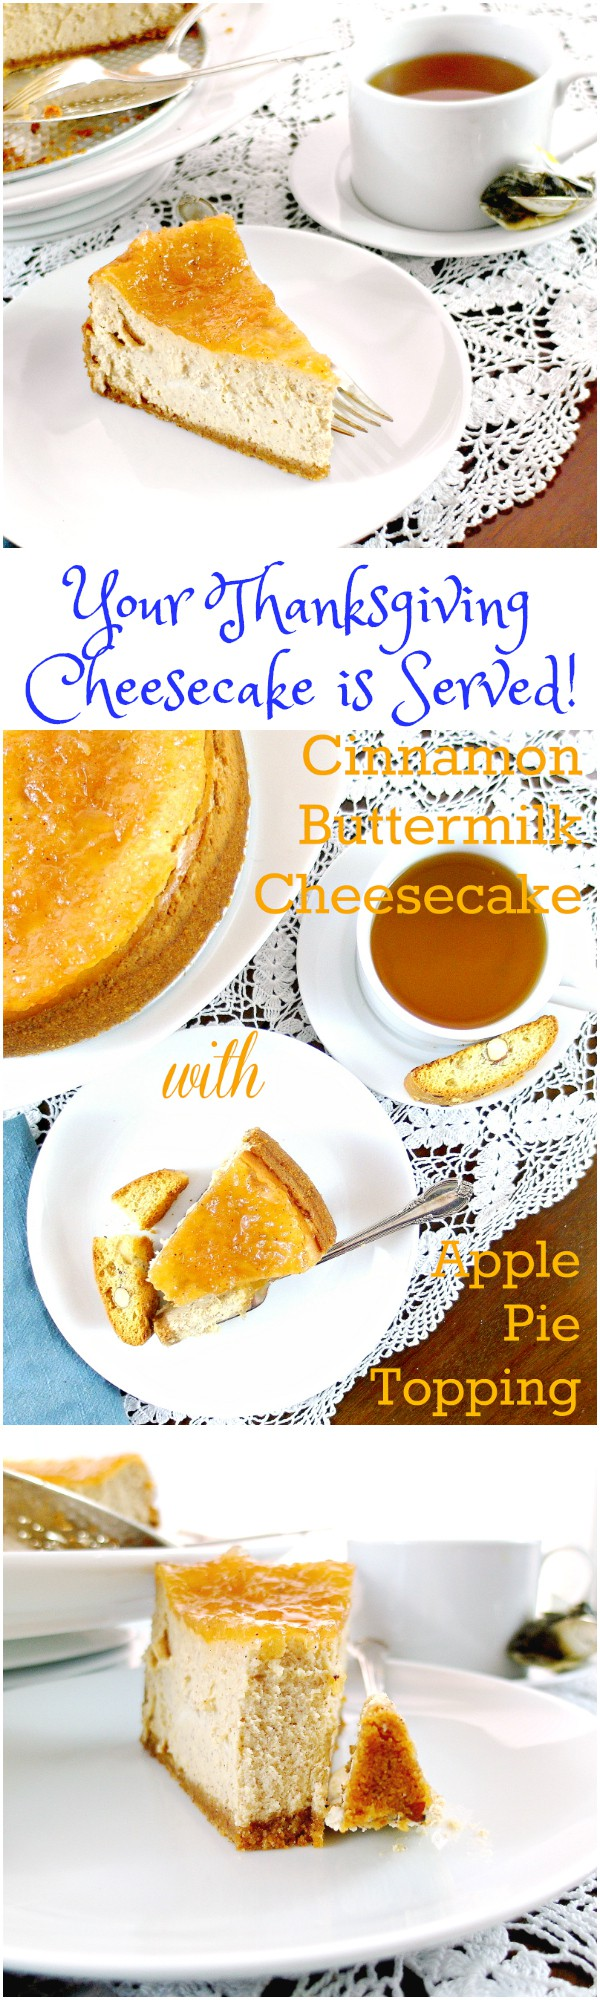 Cinnamon Buttermilk Cheesecake with Apple Pie Topping is the perfect lighter-yet-still-decadent dessert for your Thanksgiving table. The tang from the buttermilk makes it seem lighter, and the cinnamon and apple pie topping still make it feel like a fall dessert. You are going to love this delicious cheesecake recipe! | pastrychefonline.com